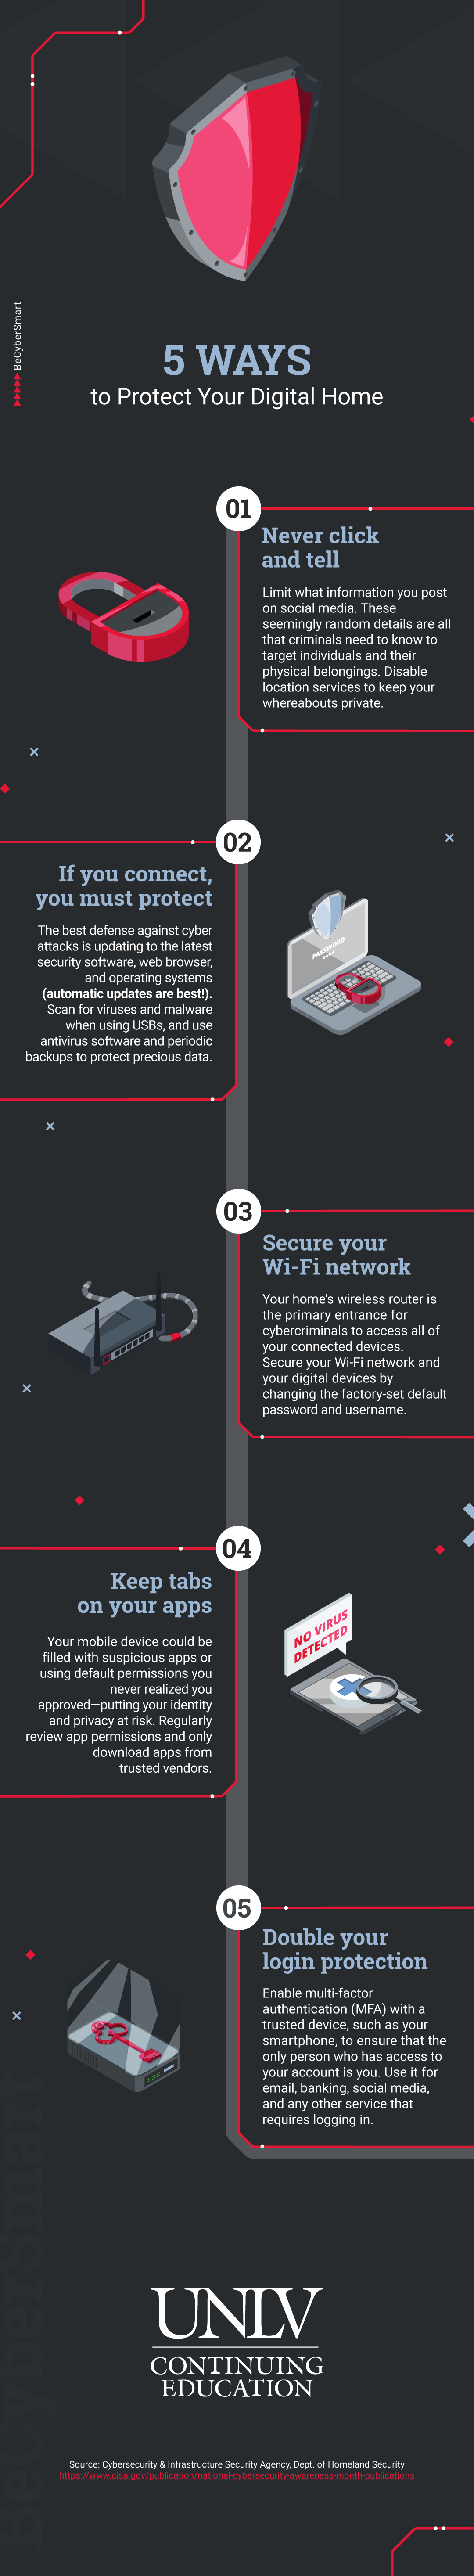 5 ways to protect your digital home infographic